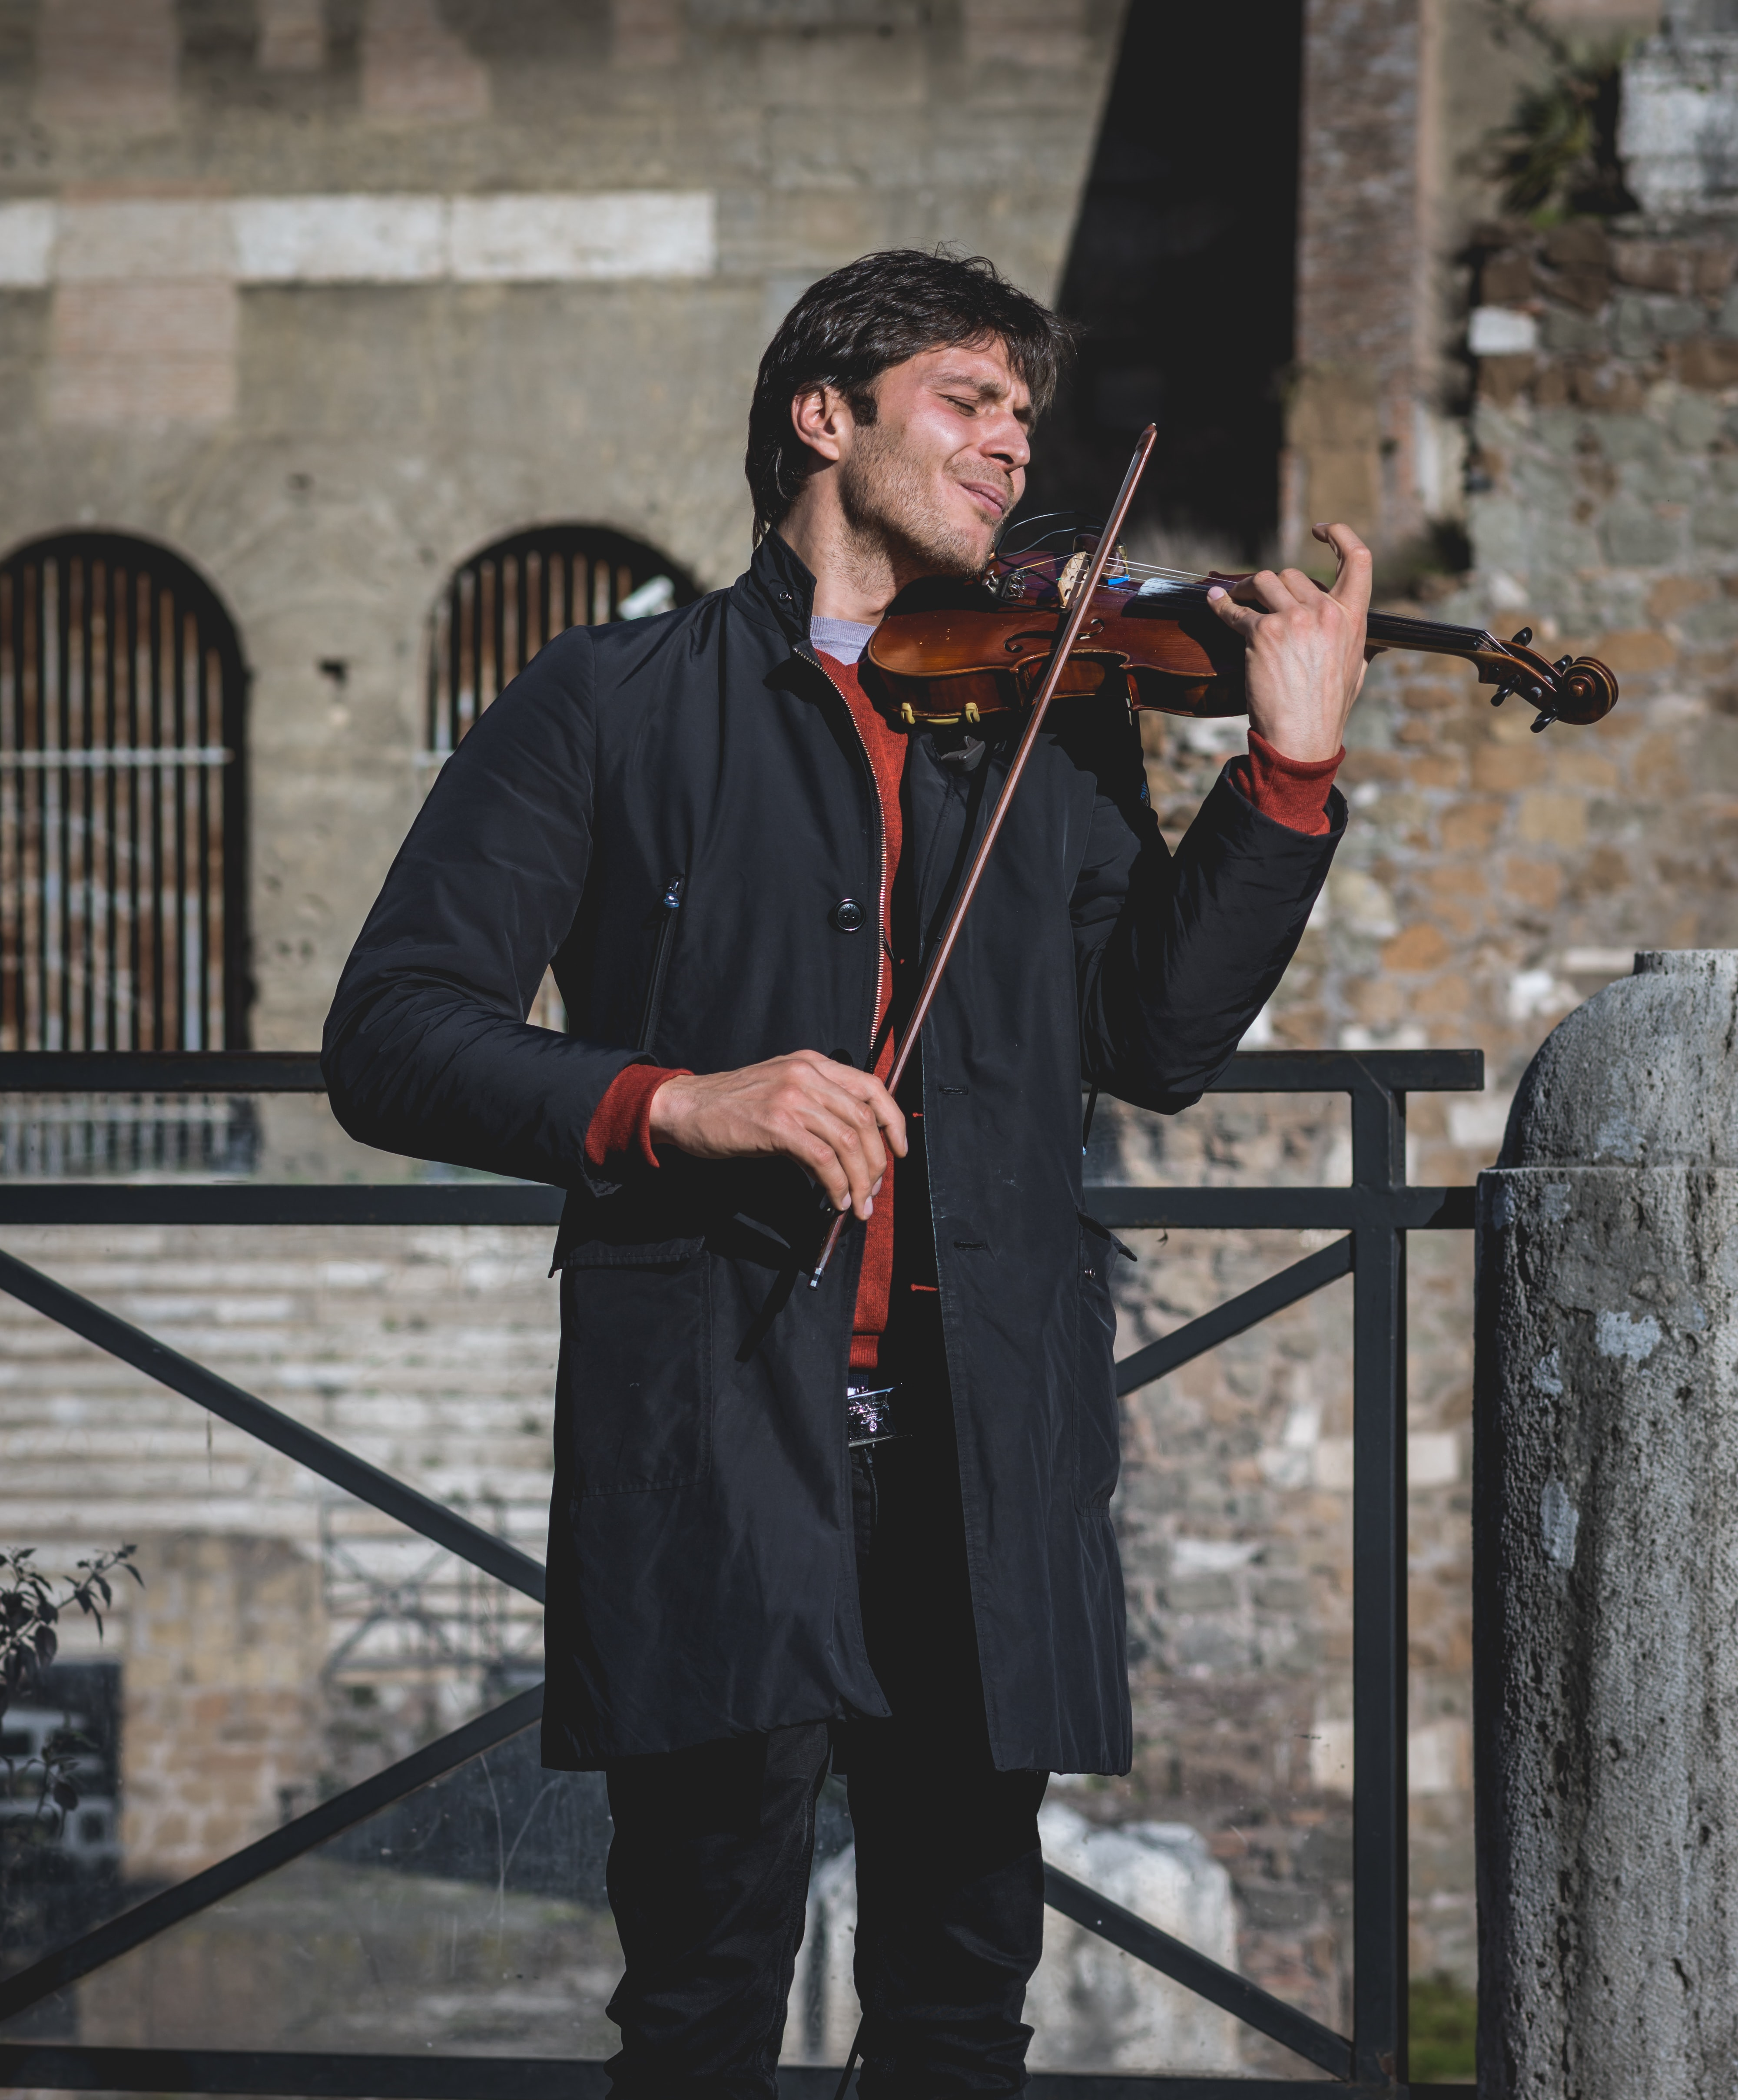 A man in a black coat playing the violet with his eyes closed in front of an old building